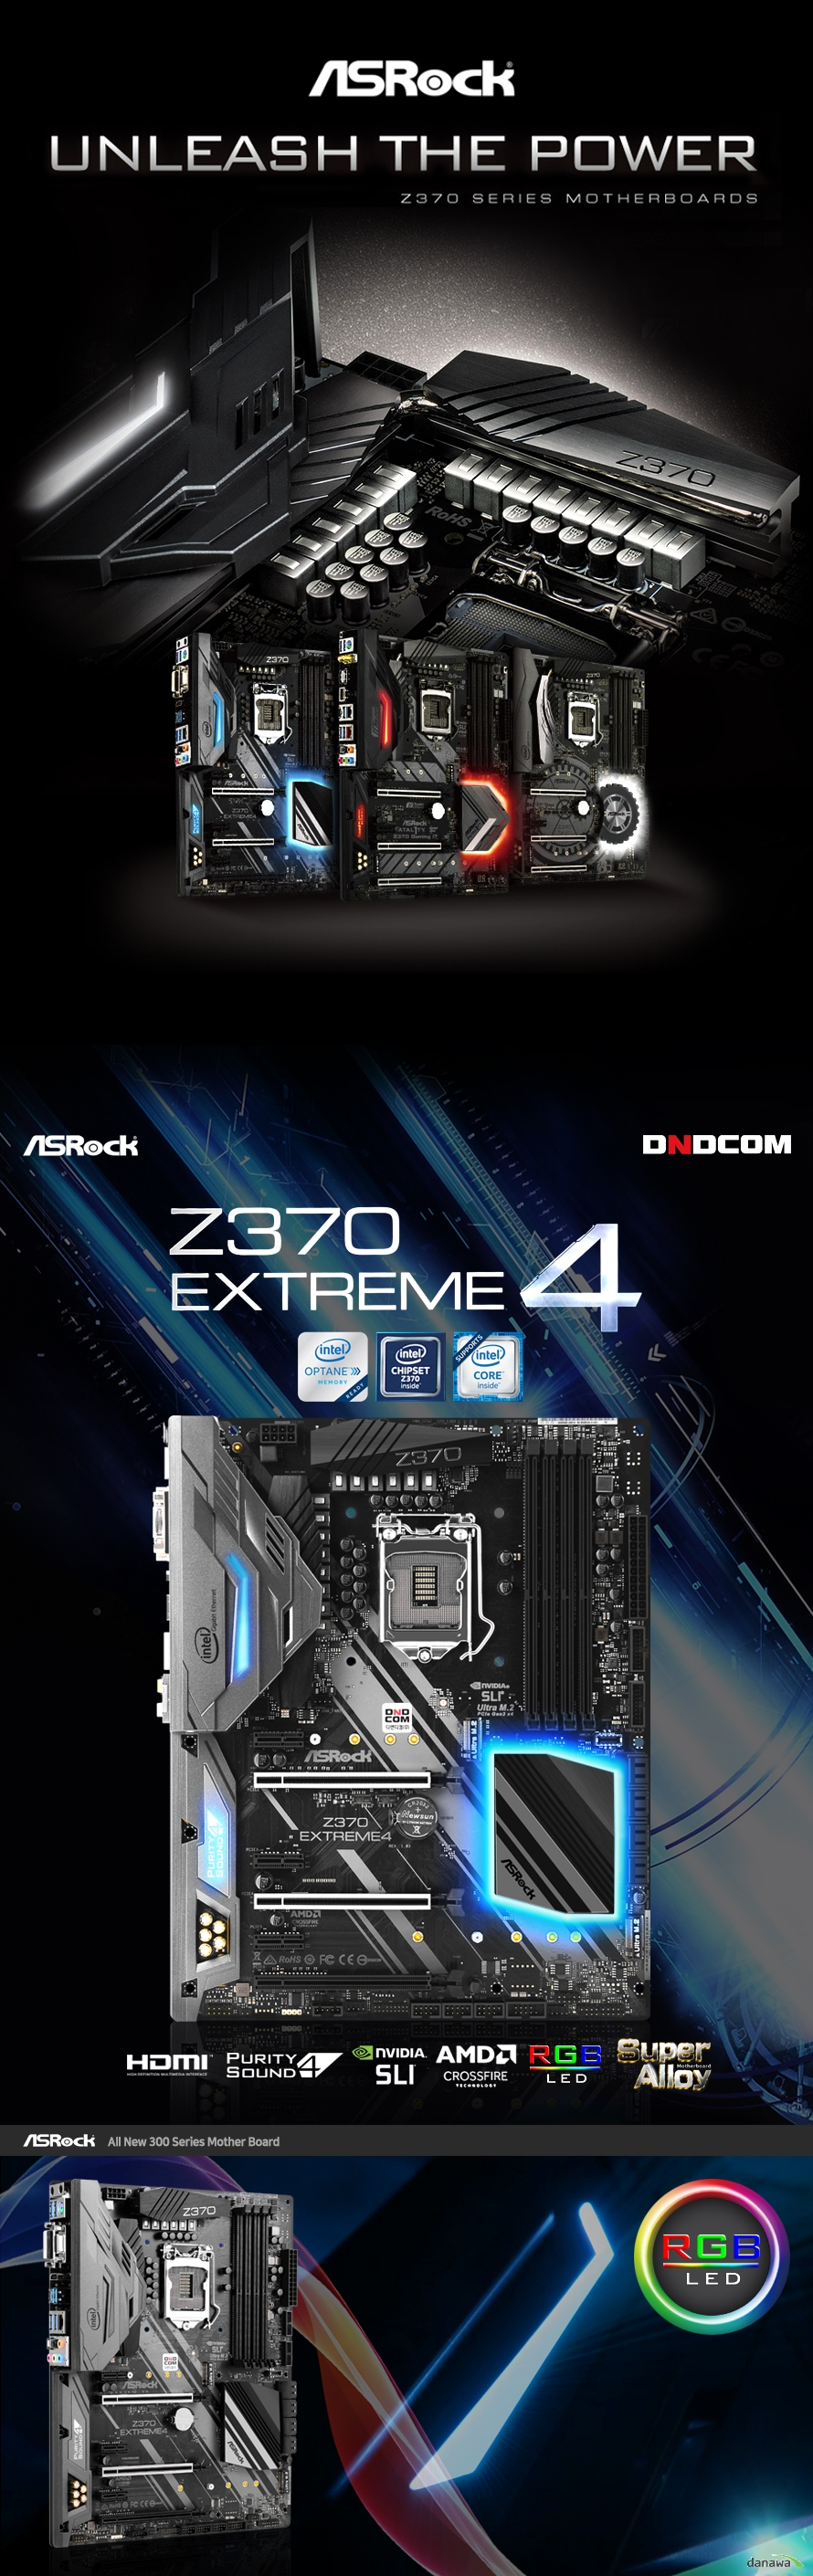 UNLEASH THE POWER ASRock Z370 익스트림 4 디앤디컴